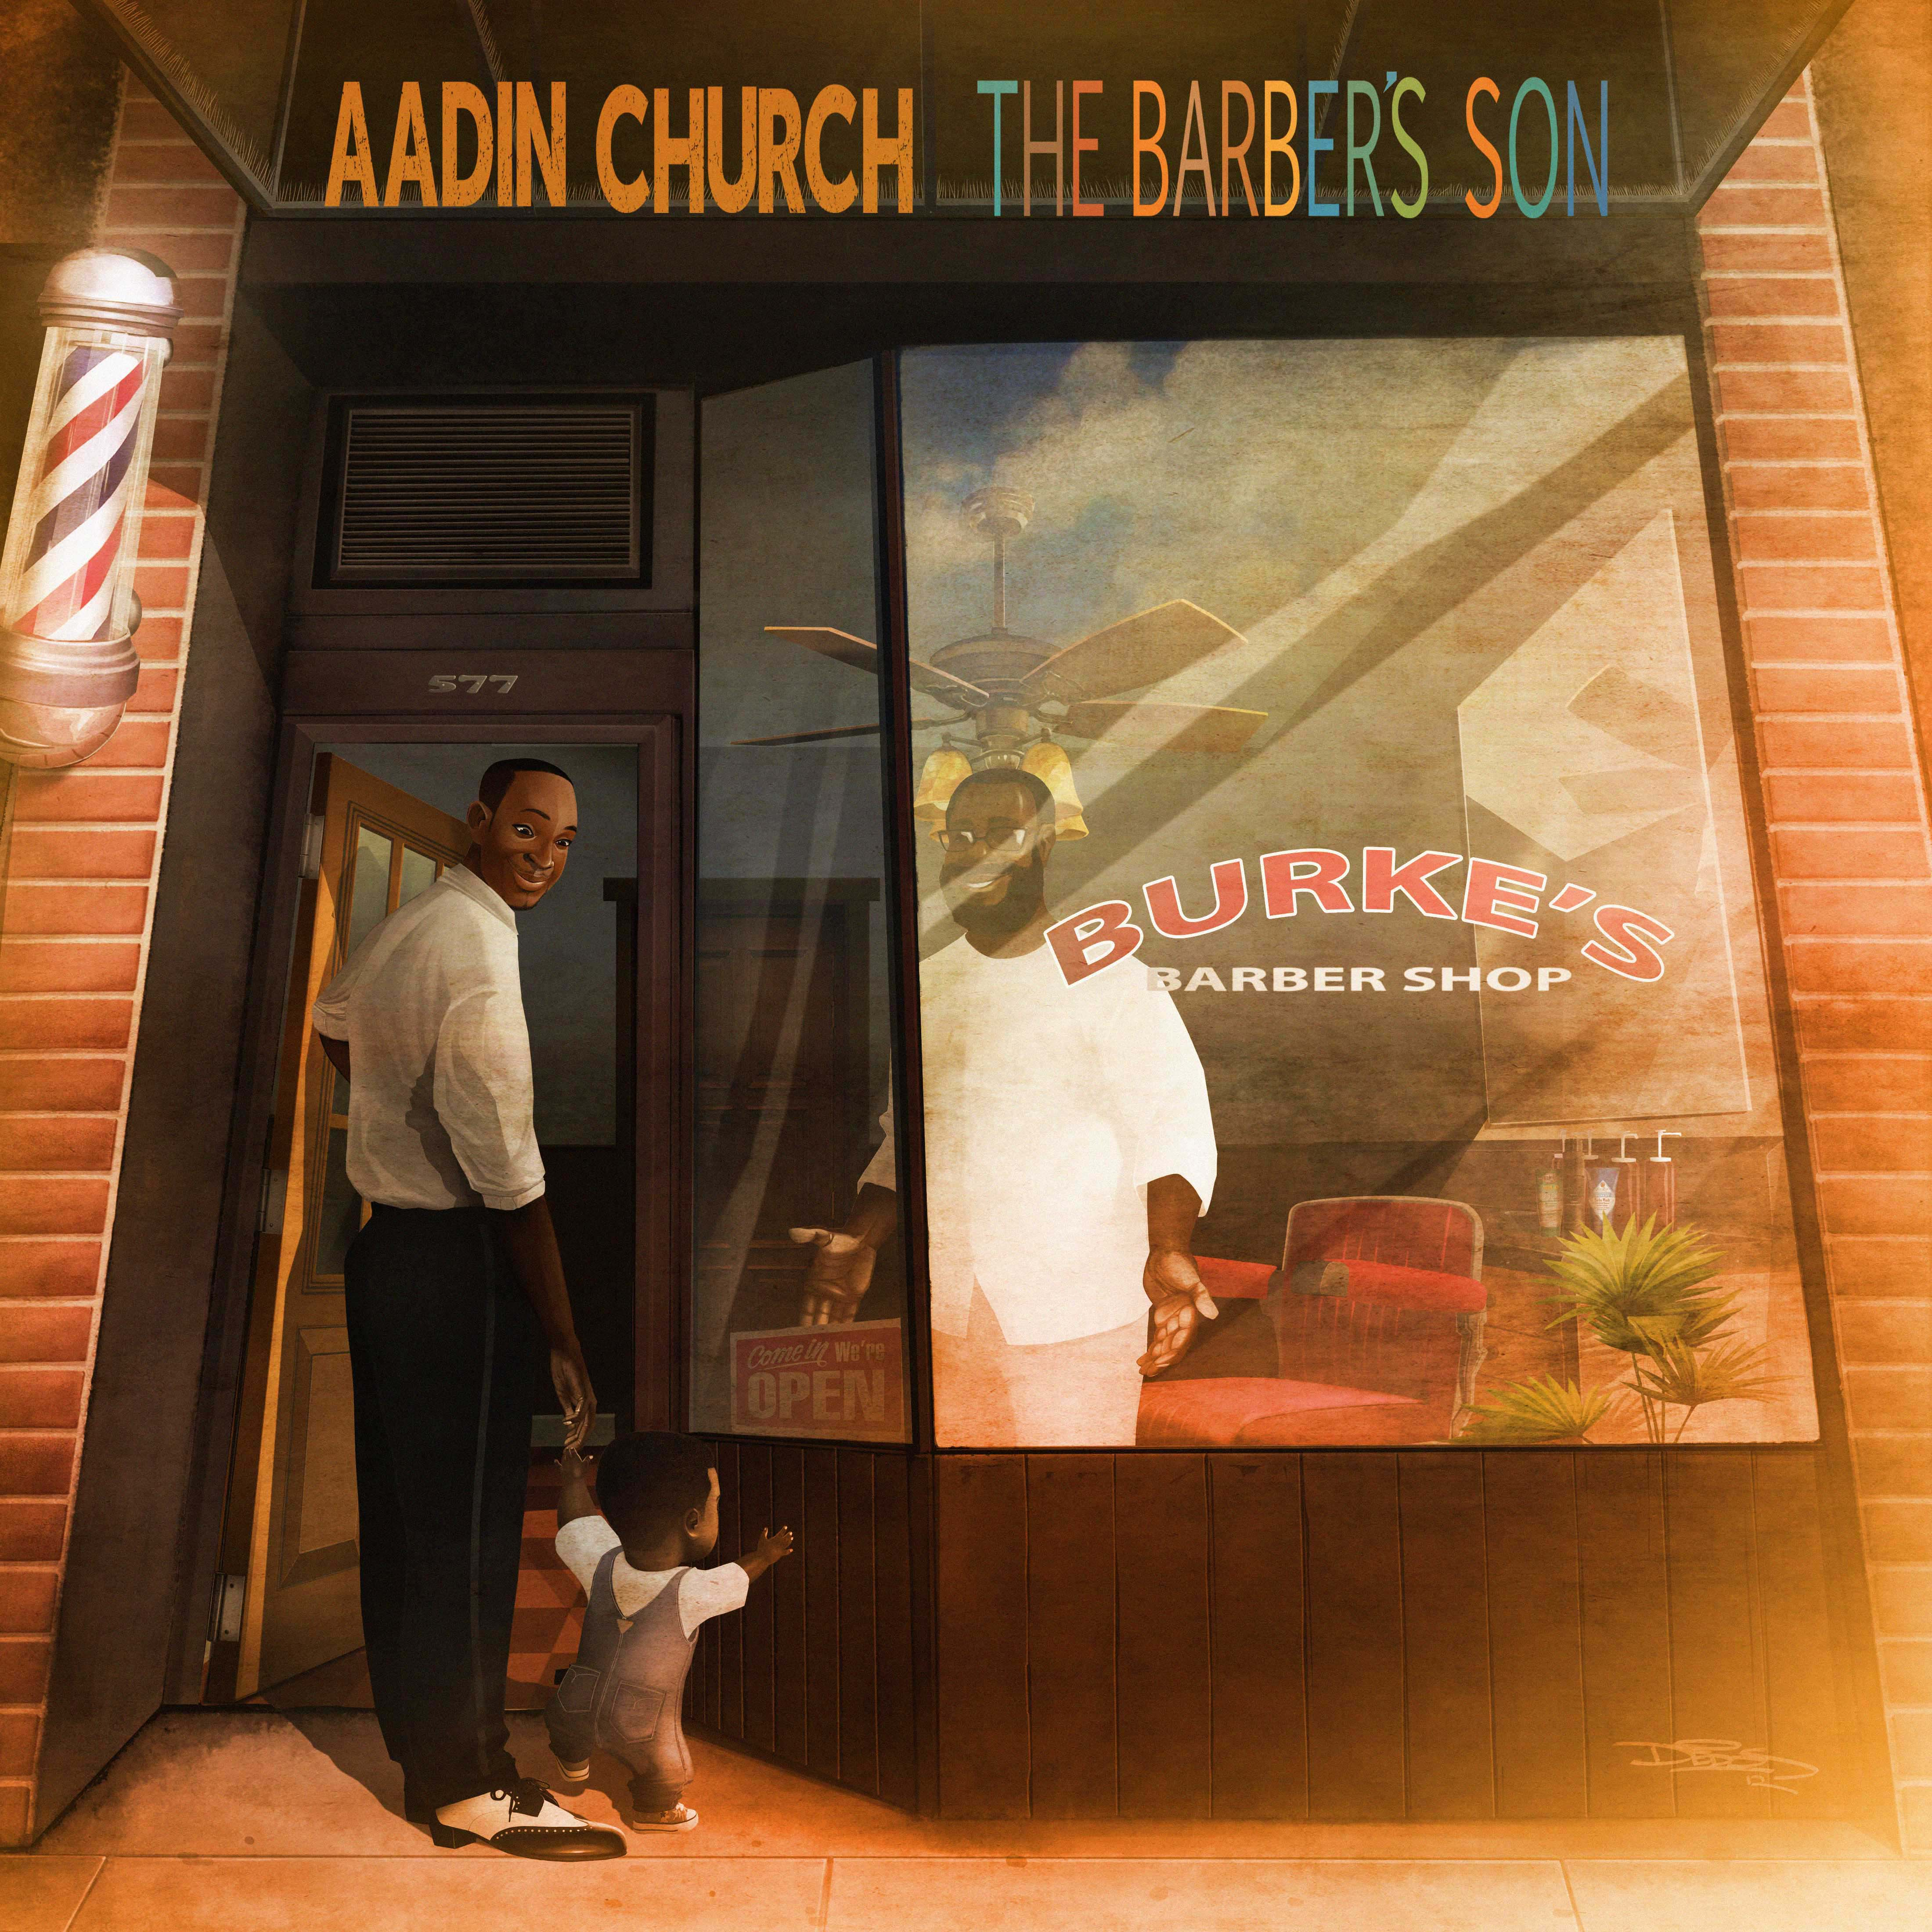 Aadin Church album cover 2012